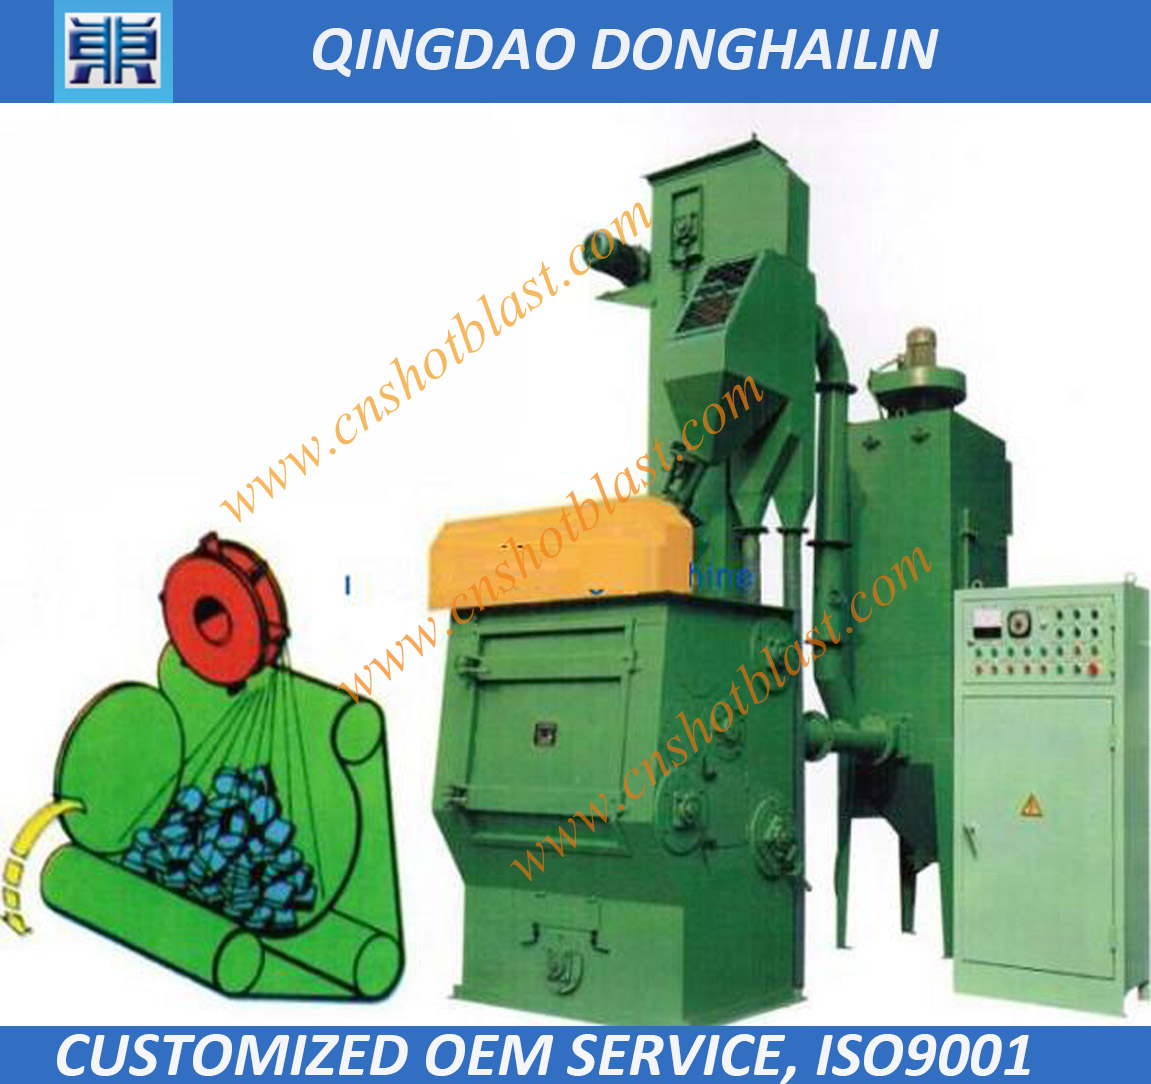 Q32 series tumbe shot blasting machine